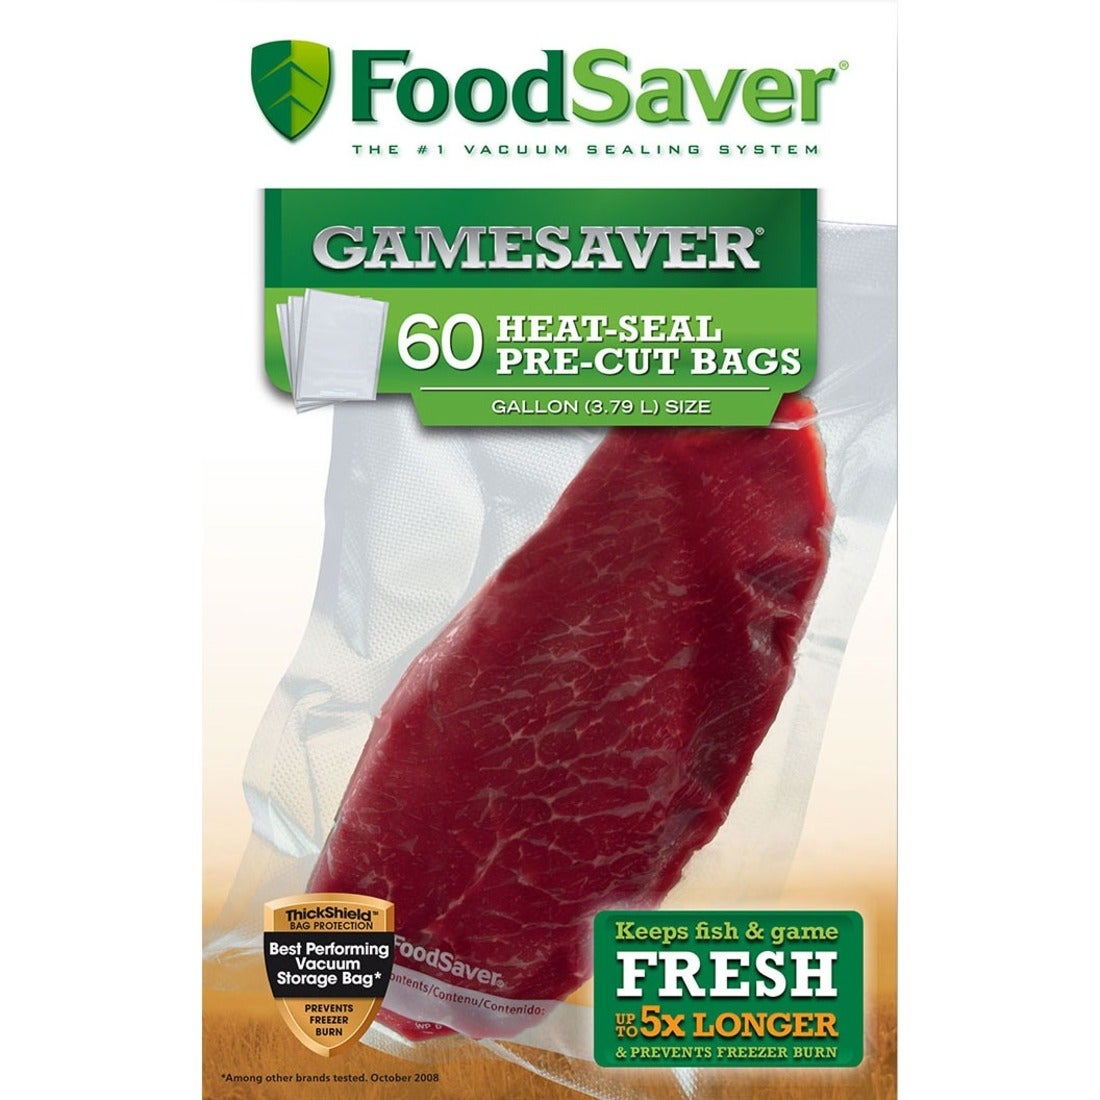 "FoodSaver GameSaver 11""x14"" Gallon Vacuum-Seal Bags, 60 Count - Thumbnail 0"